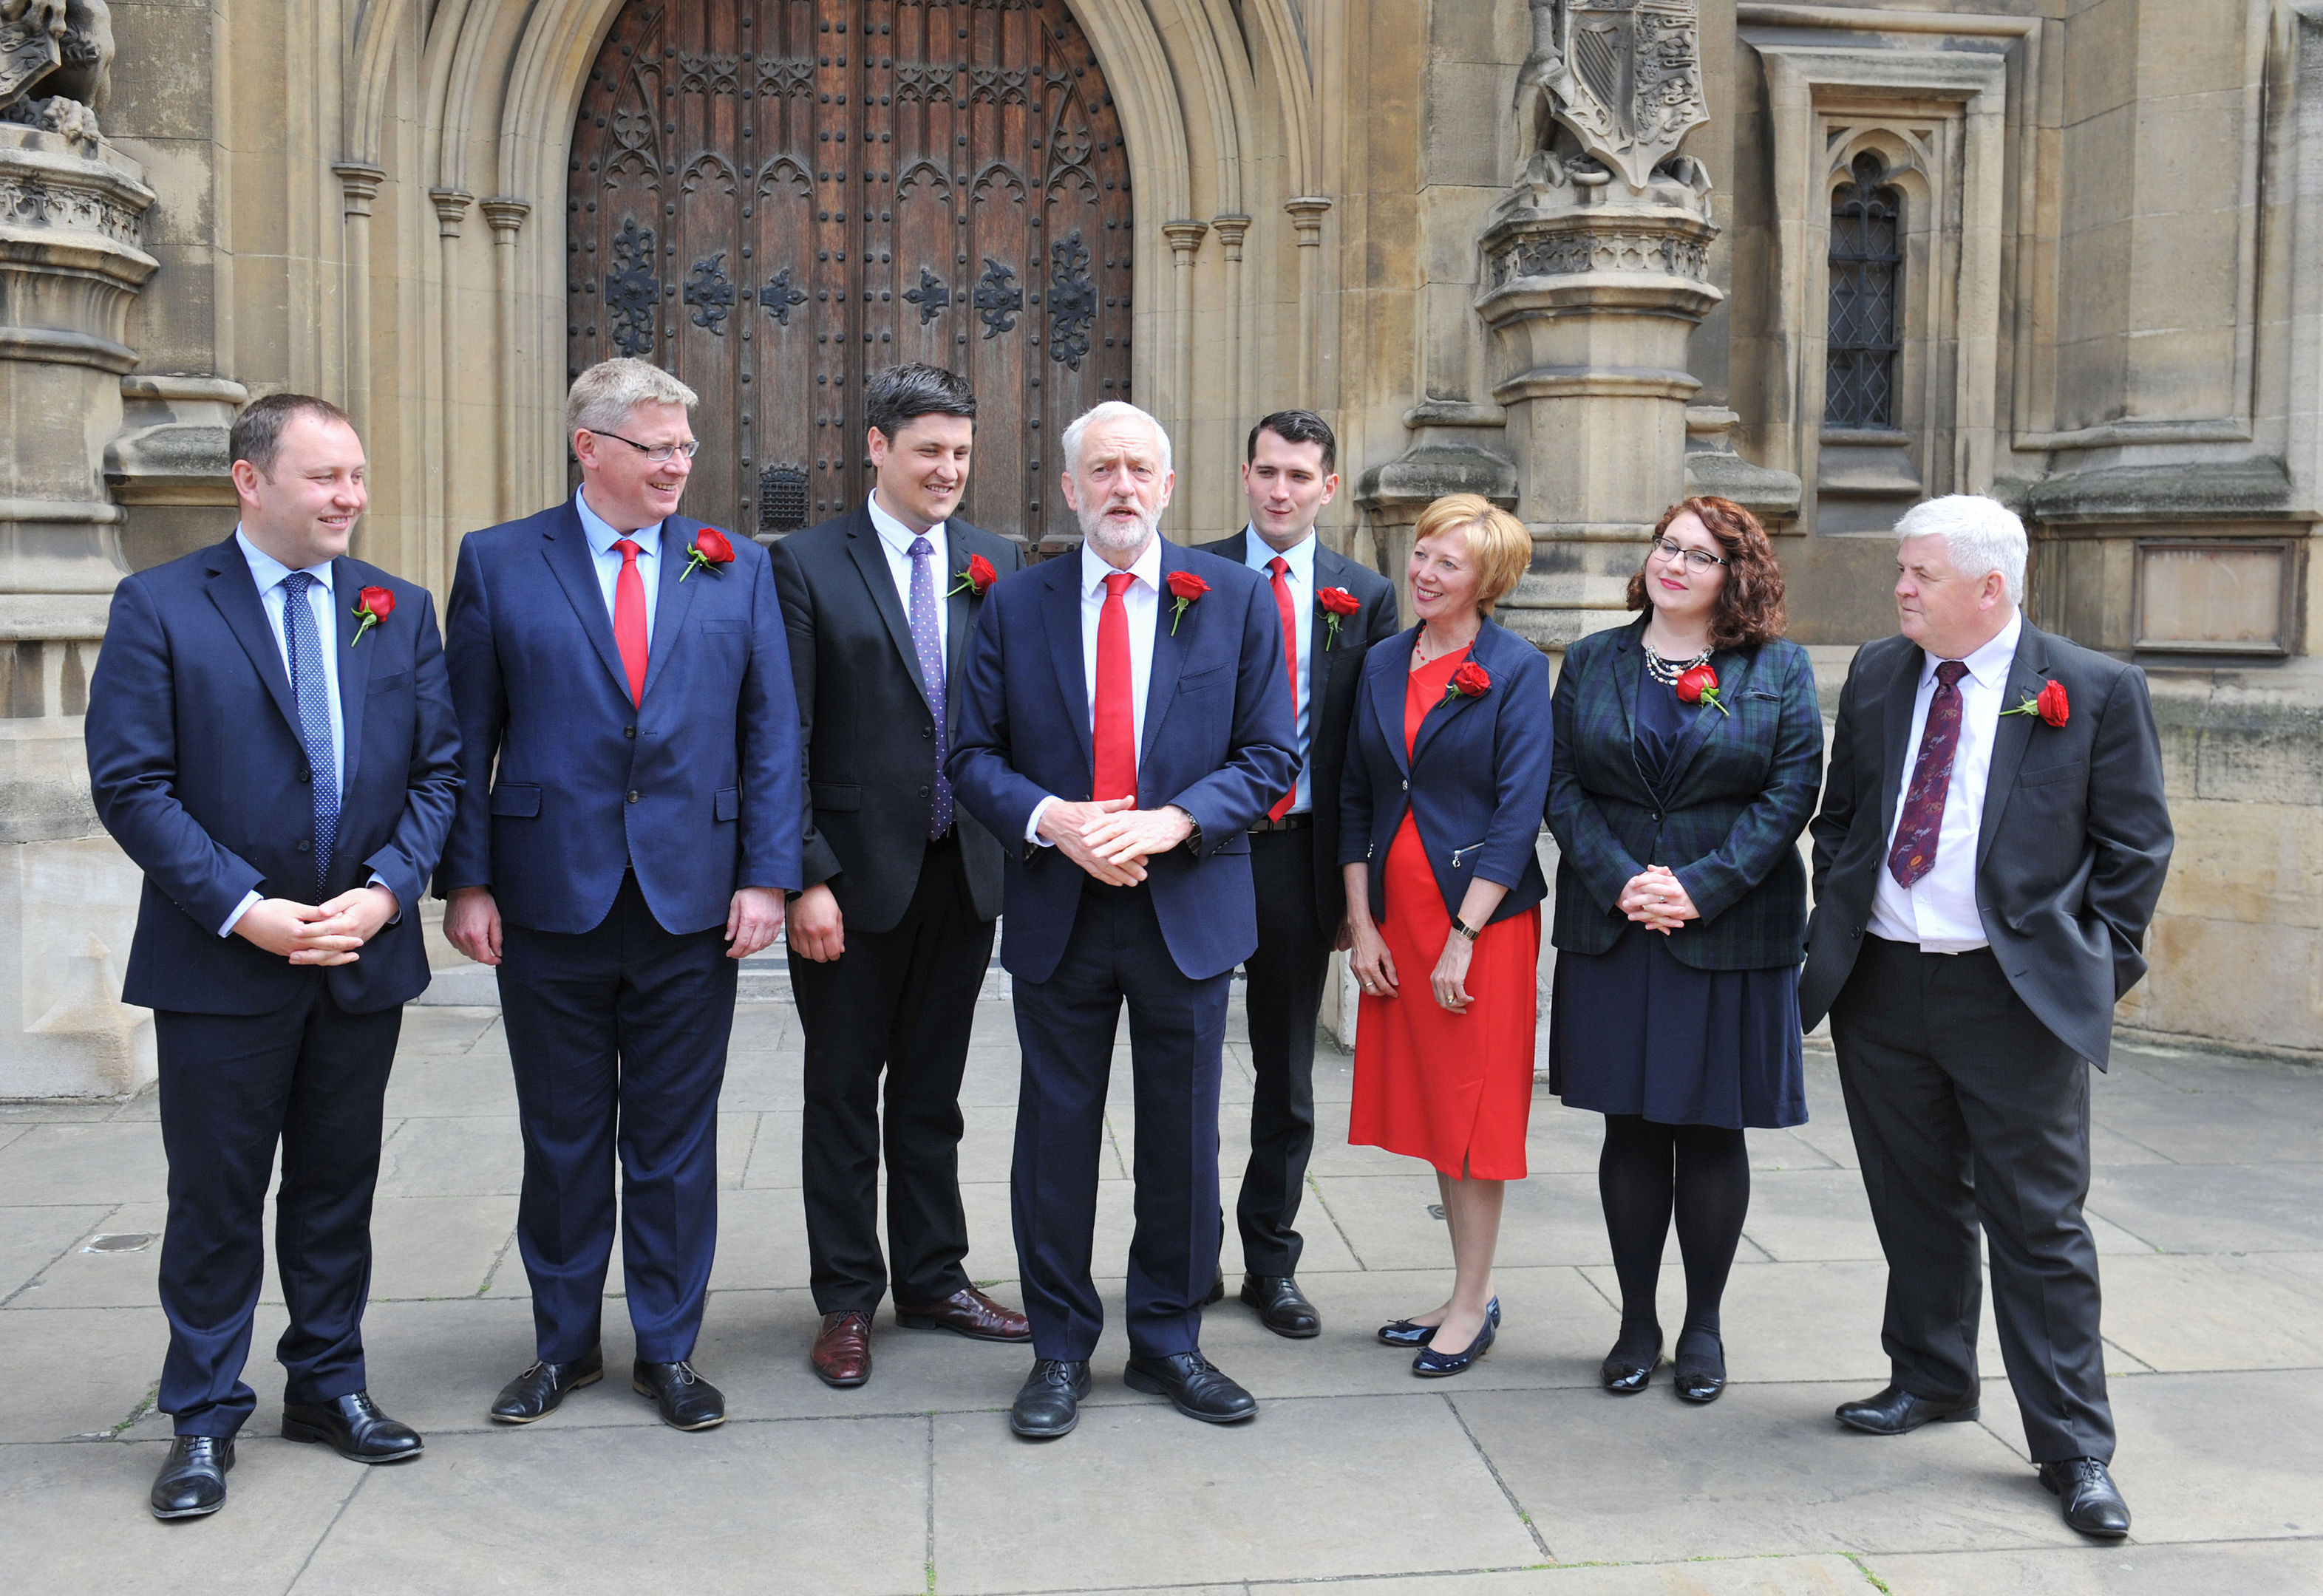 Labour leader Jeremy Corbyn welcomes Scottish Labour MPs outside St Stephen's Entrance to the Houses of Parliament.